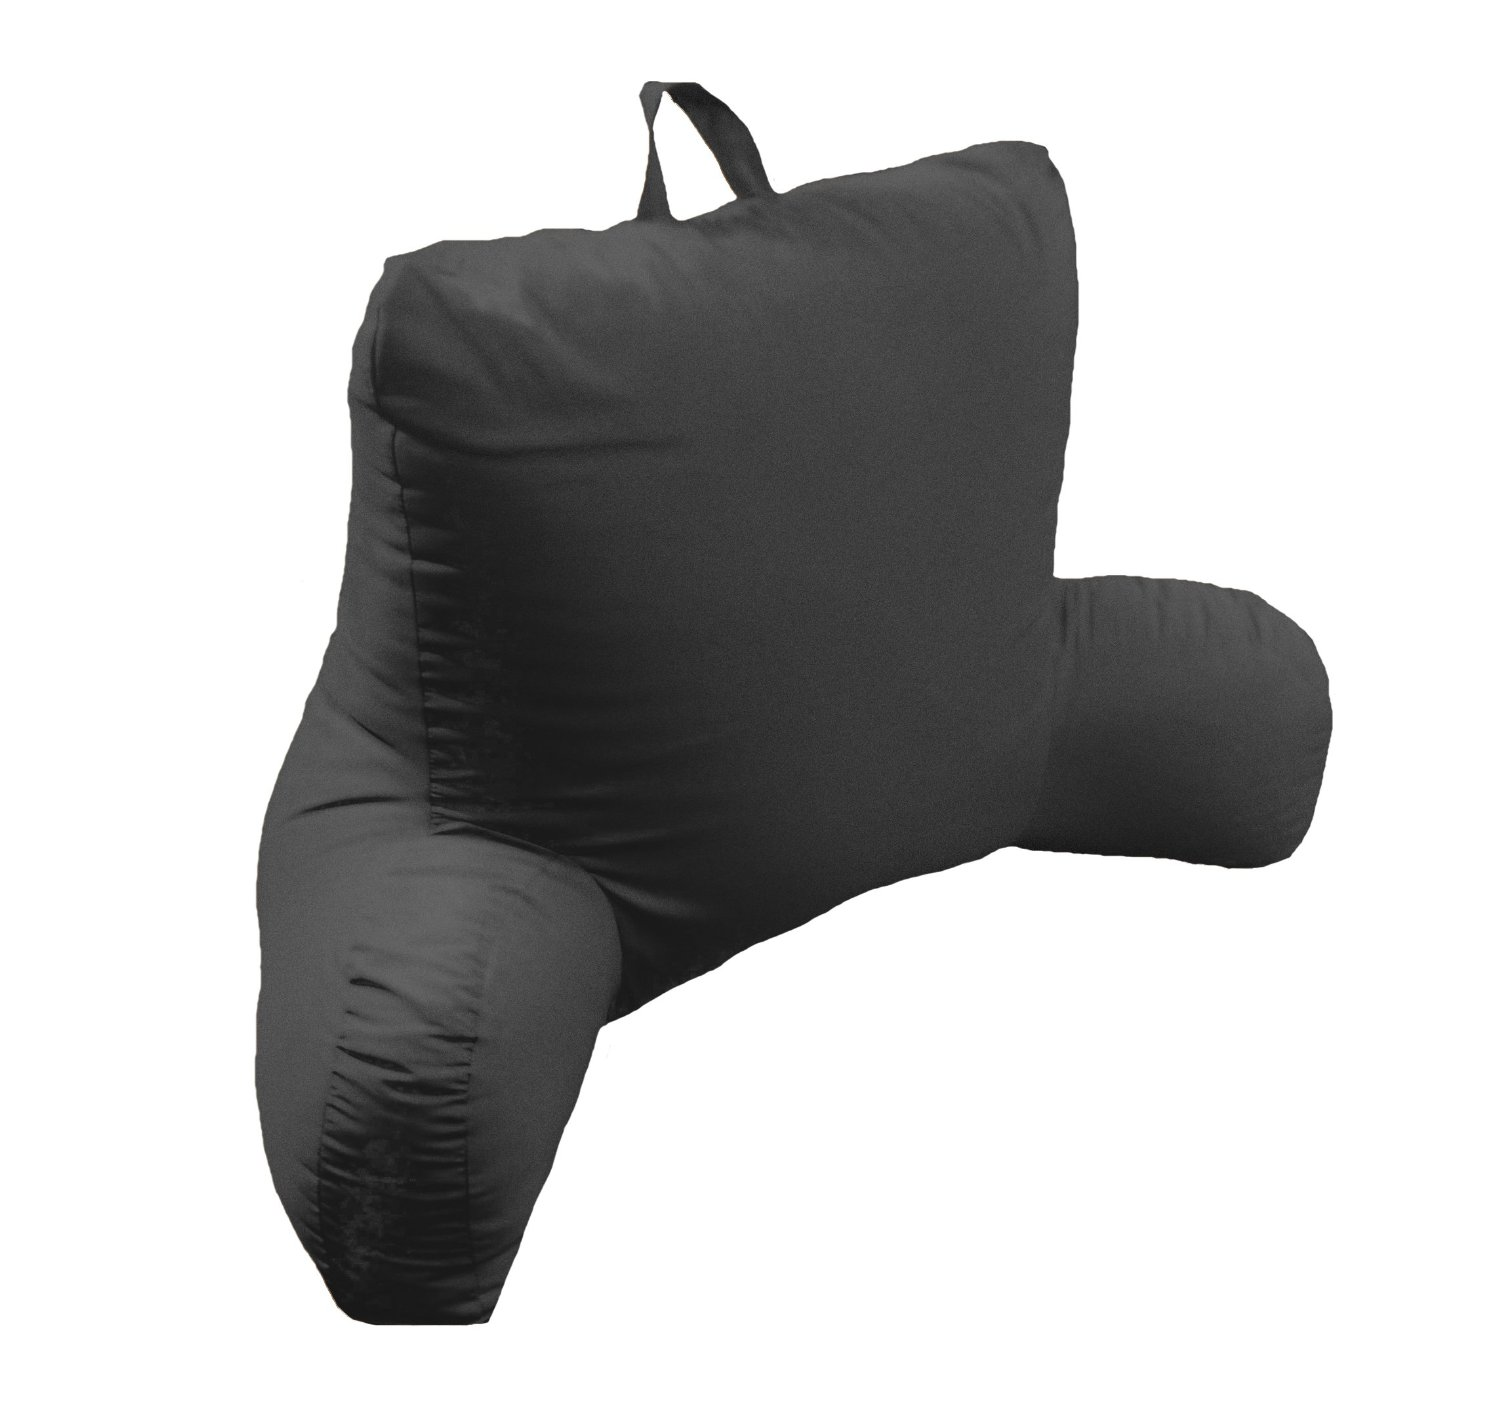 Alluring Backrest Pillow with Arms for Living Room Interior Ideas: Black Backrest Pillow With Arms Ideas